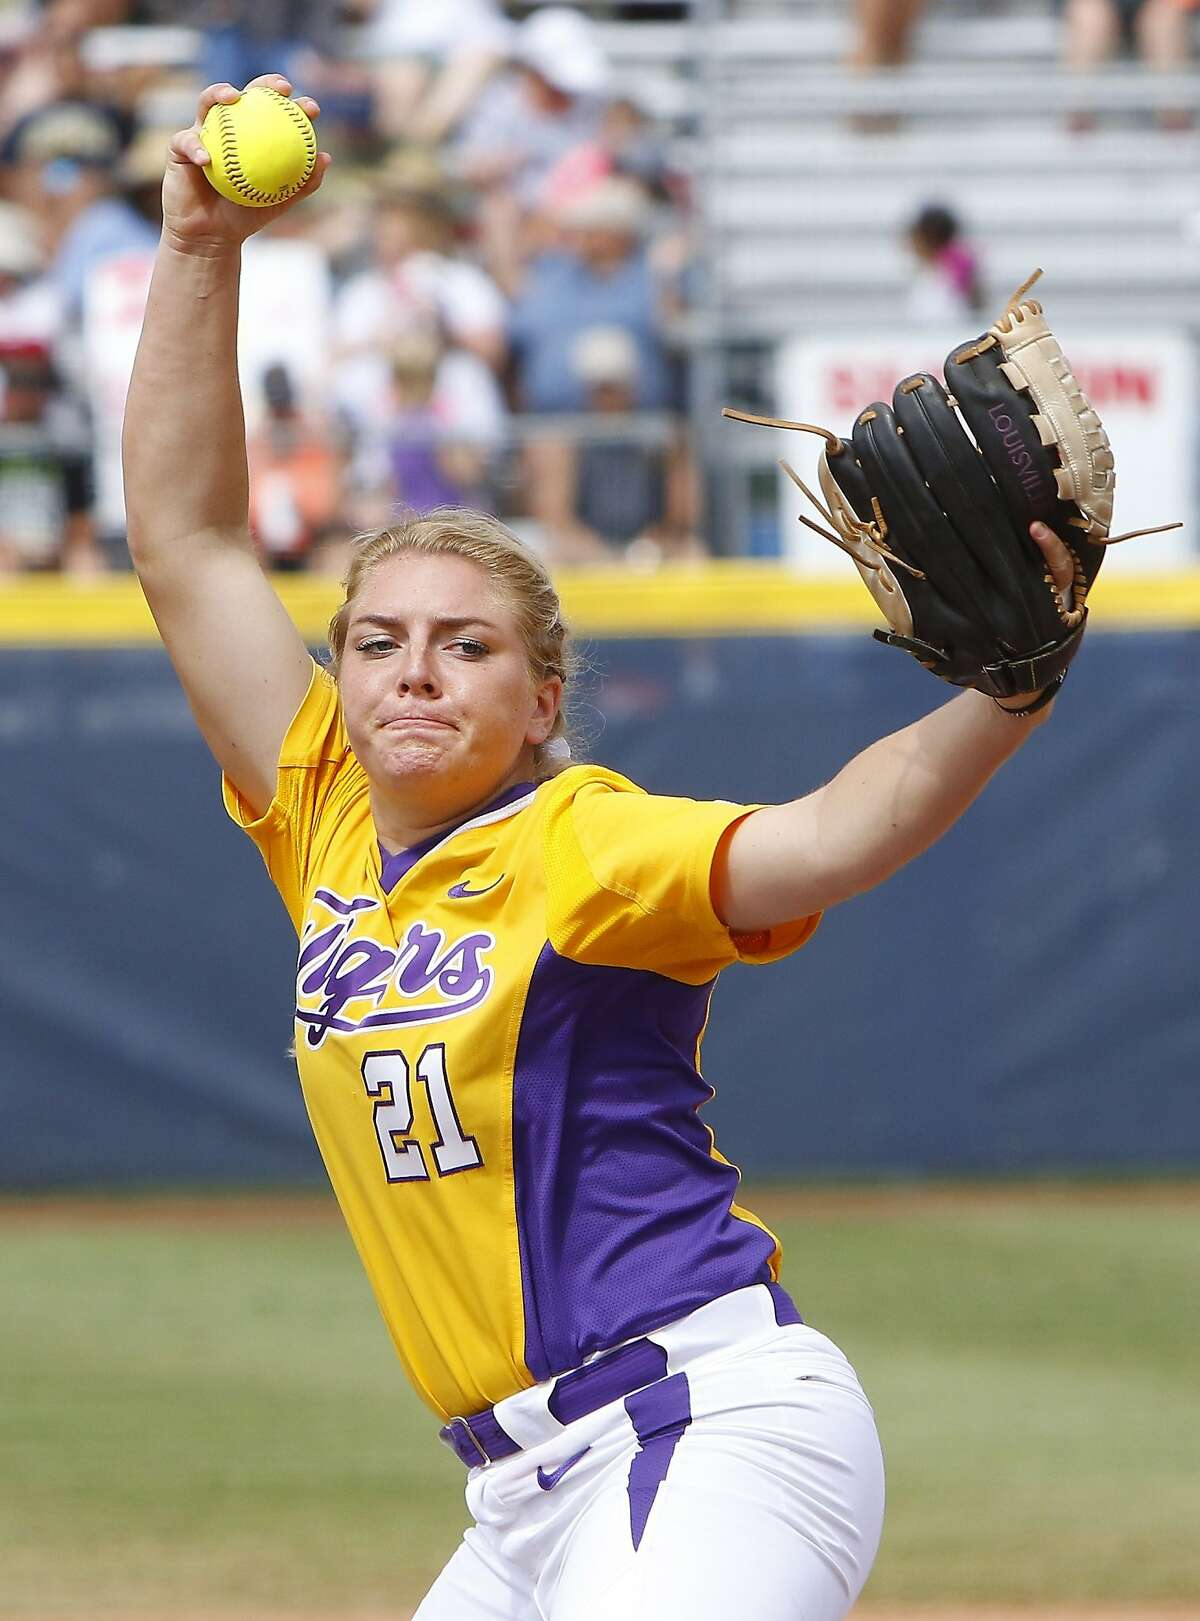 LSU's Carley Hoover pitches in the second inning during an NCAA Women's College World Series softball game against Michigan in Oklahoma City, Sunday, May 31, 2015. Michigan won 6-3 and moves onto the championship series. (AP Photo/Alonzo Adams)